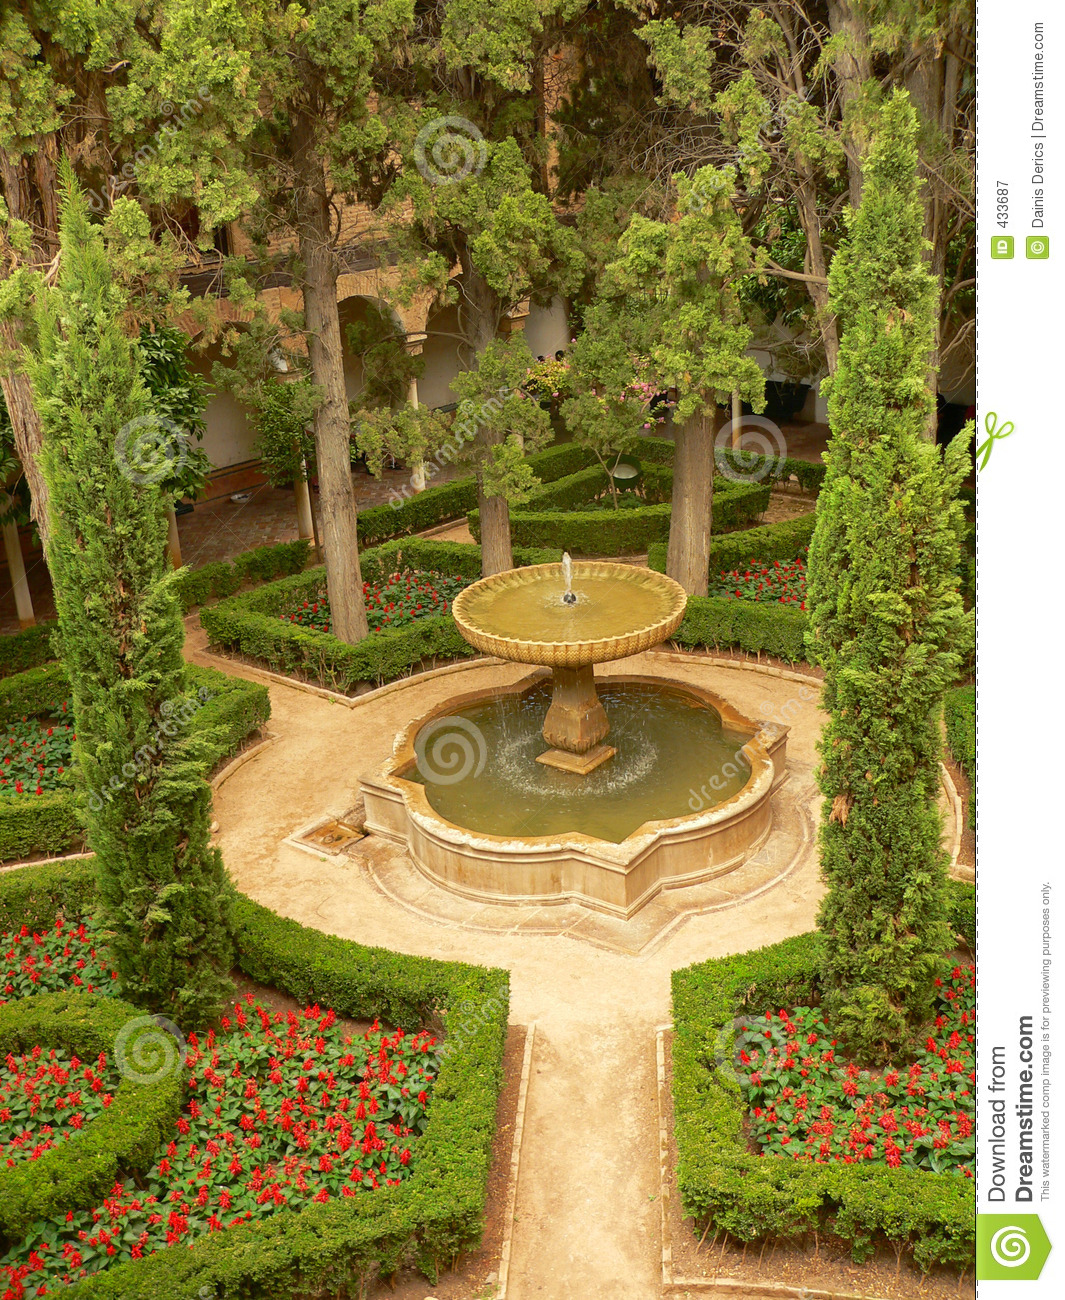 Alhambra Sage Granada Park Alhambra Ca: Aerial View Of Parc In Alhambra Royalty Free Stock